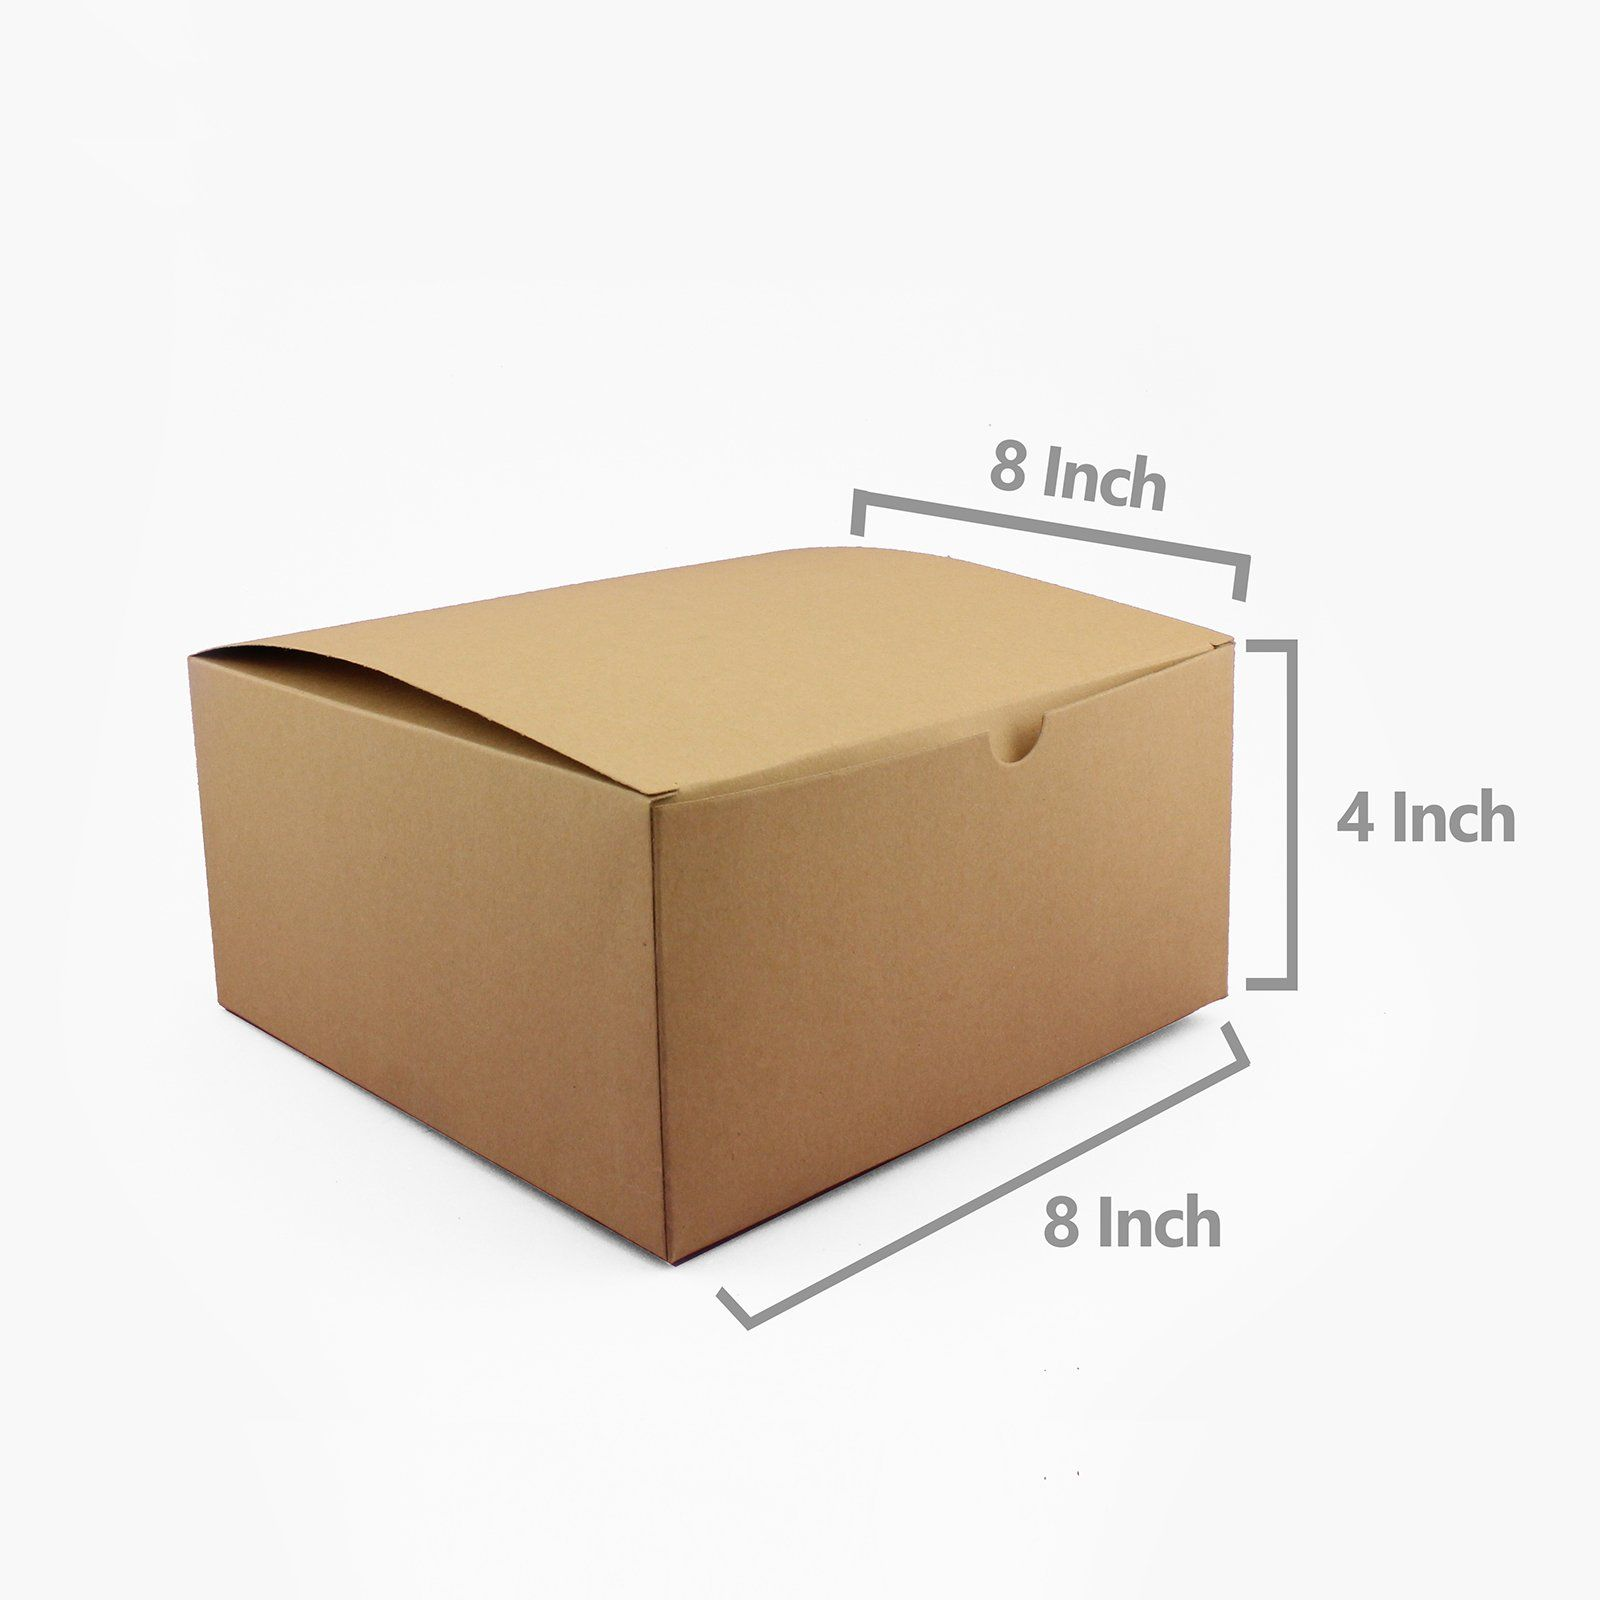 Adorox 10 Pack 8 X 8 X 4 Inches Kraft Boxes Cardboard Gift Box With Lids For Wedding Birthday Candy Gift Box Gift Boxes With Lids Baby Shower Party Decorations